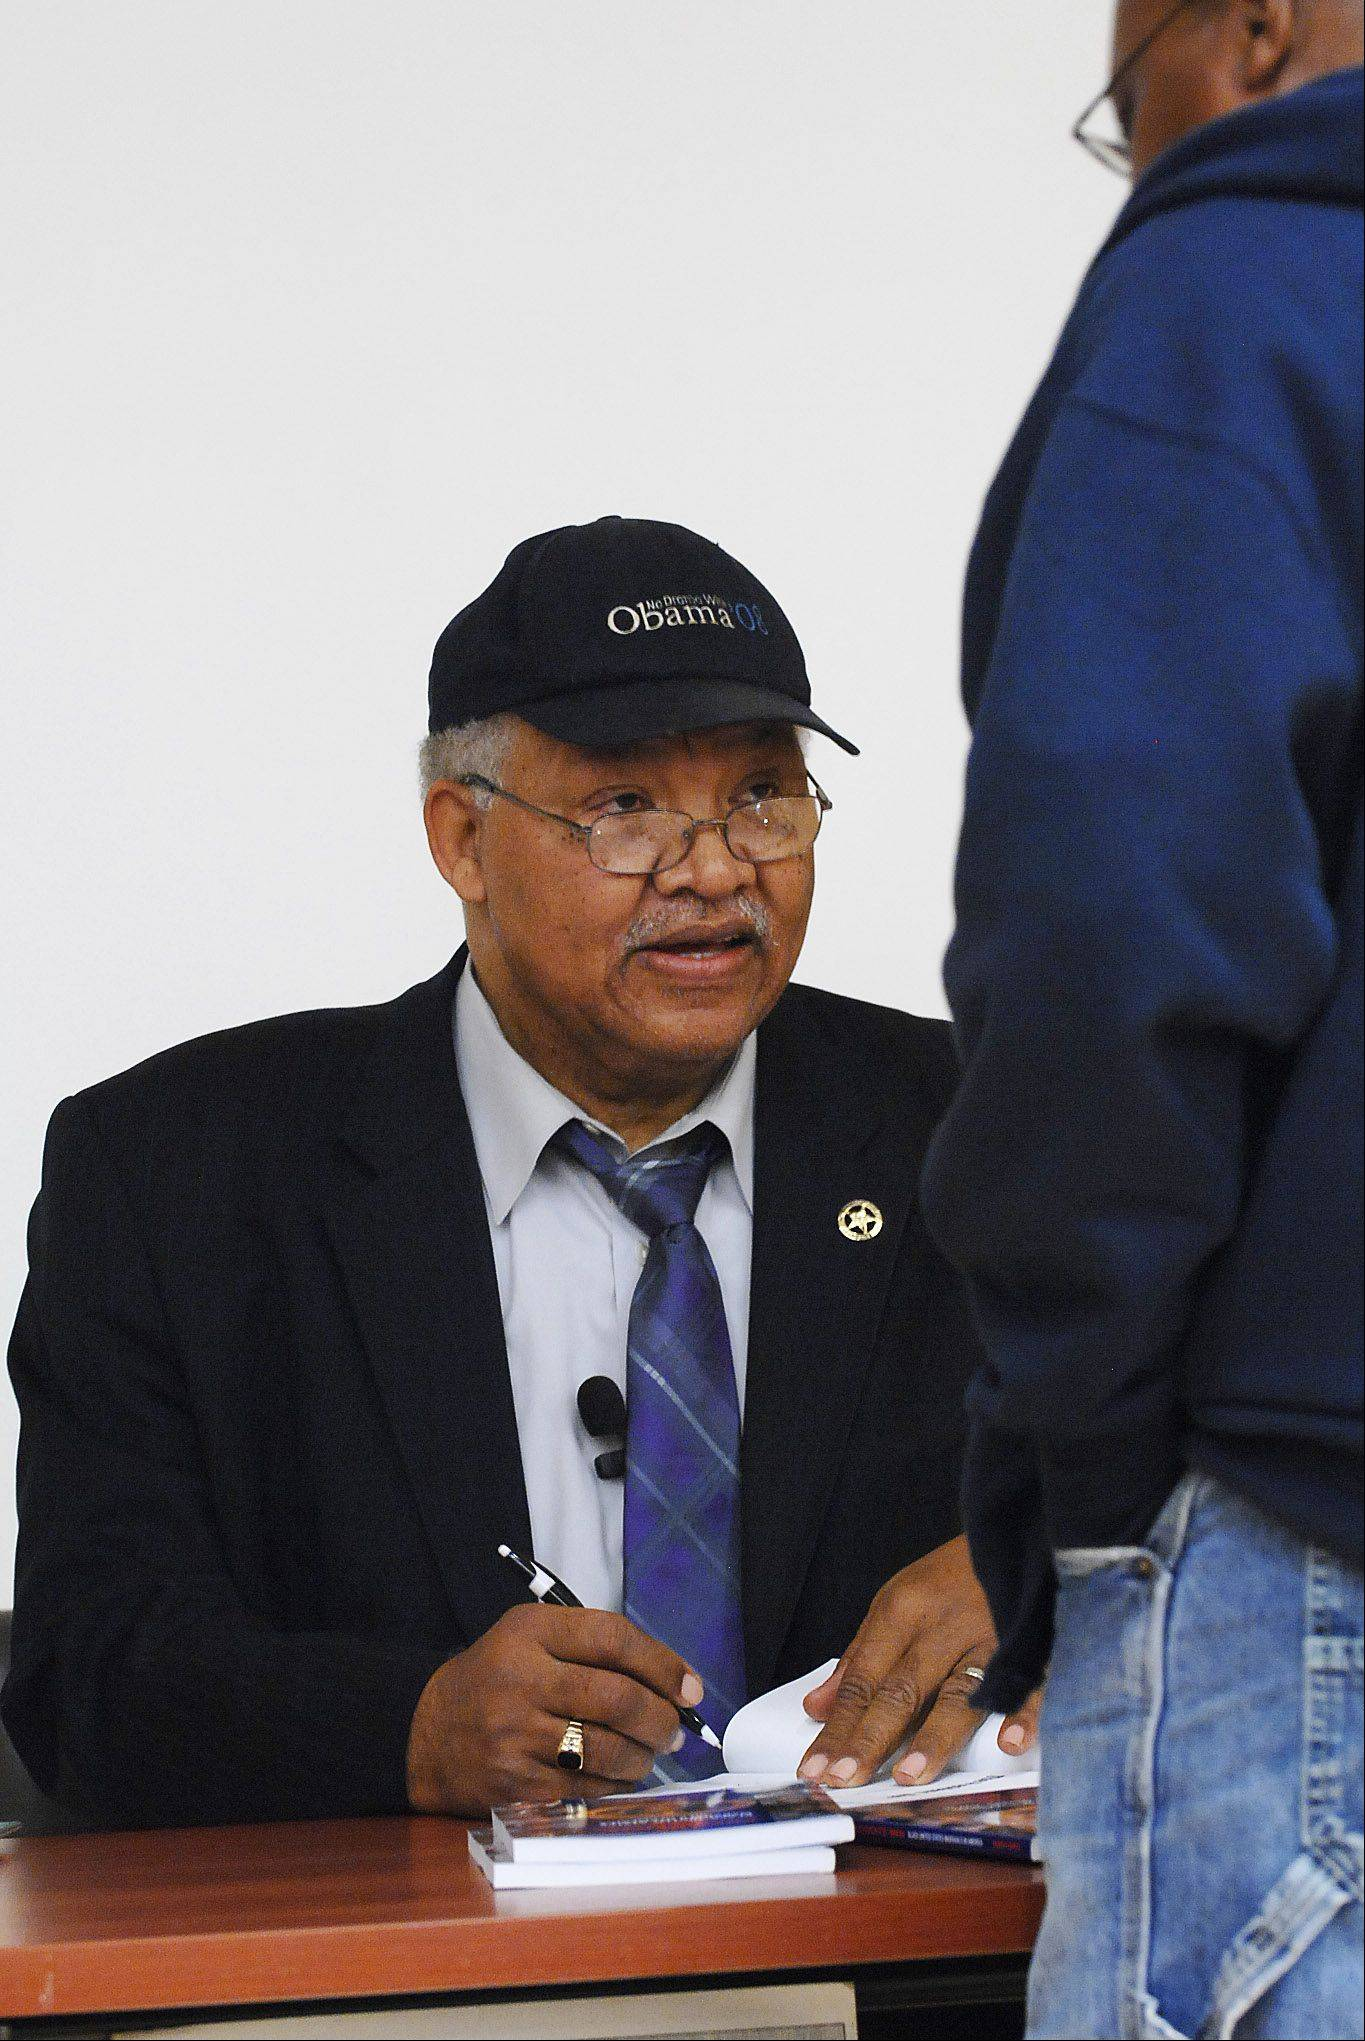 Robert Moore is one of only 68 African Americans appointed to serve as a United States marshals since the position was created in 1789. He wrote a book about the contributions of black marshals after realizing they were overlooked in history texts. Moore signs a copy of his book after a speech Sunday at the Gail Borden Public Library in Elgin.